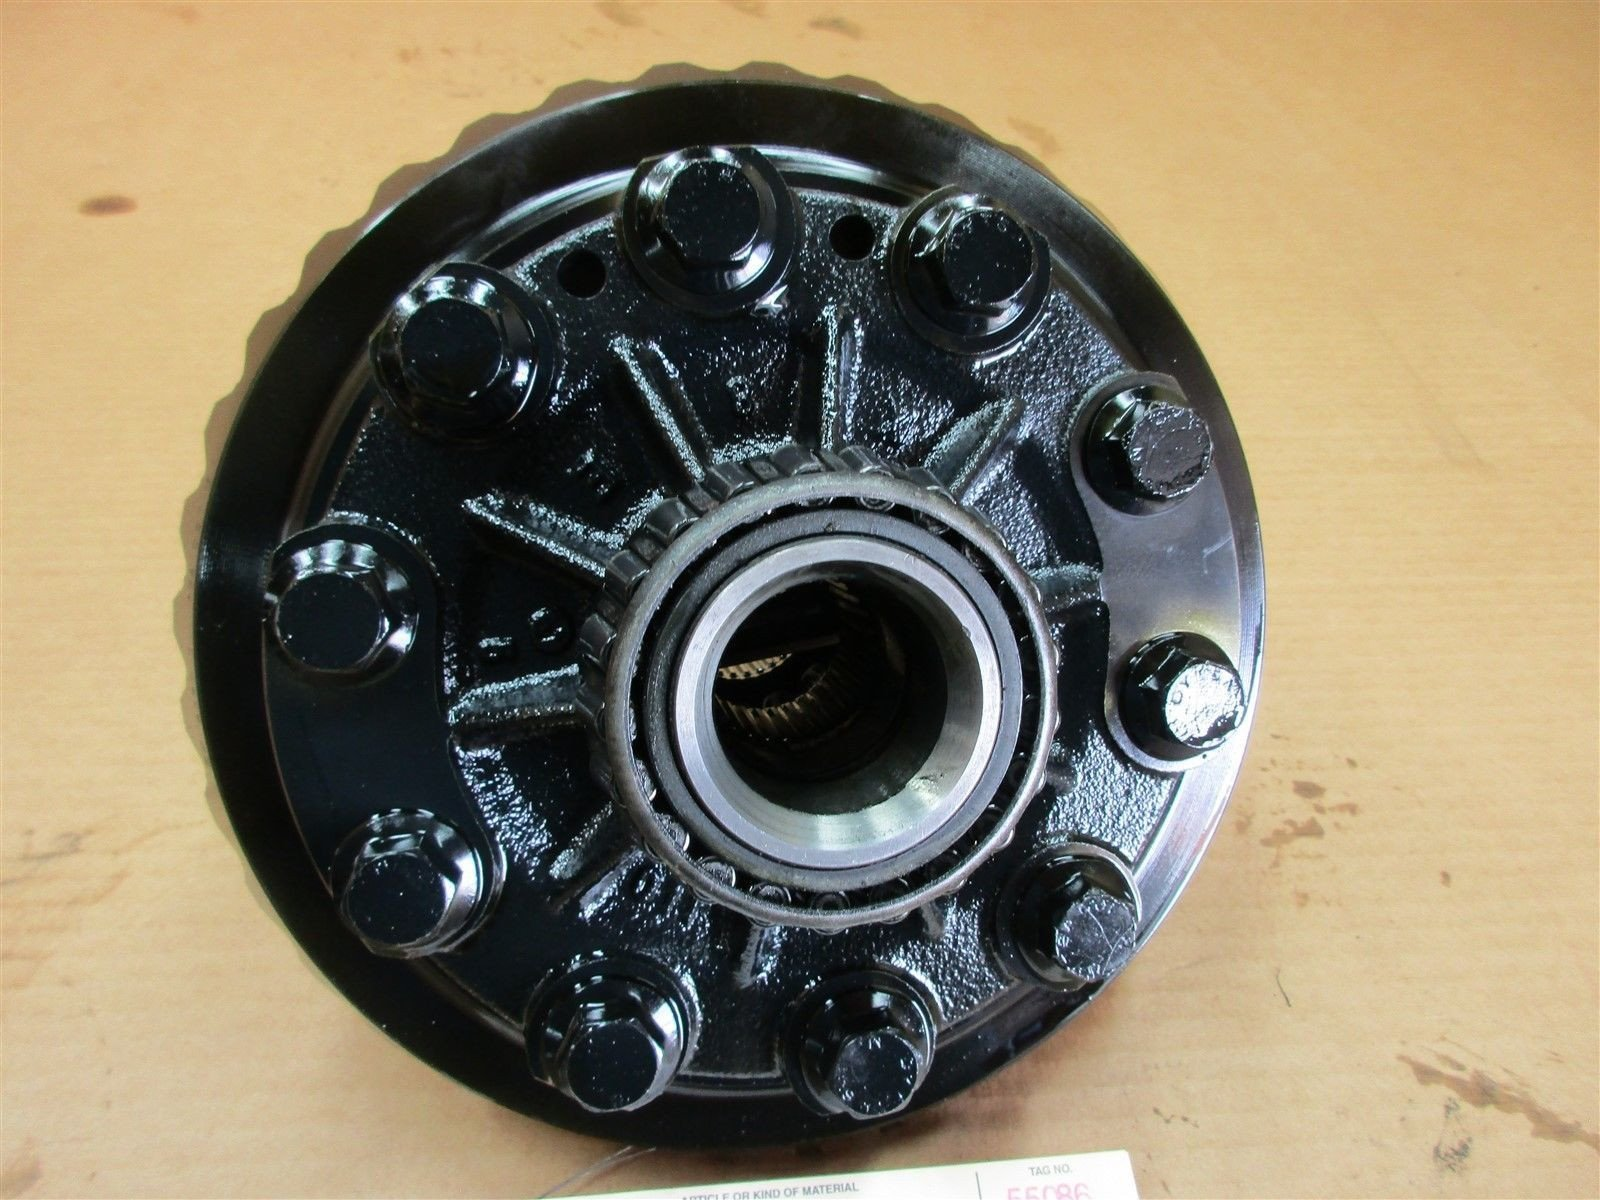 05 Cayenne Turbo AWD Porsche 955 REAR DIFFERENTIAL GEAR 4460360134050C 155,362